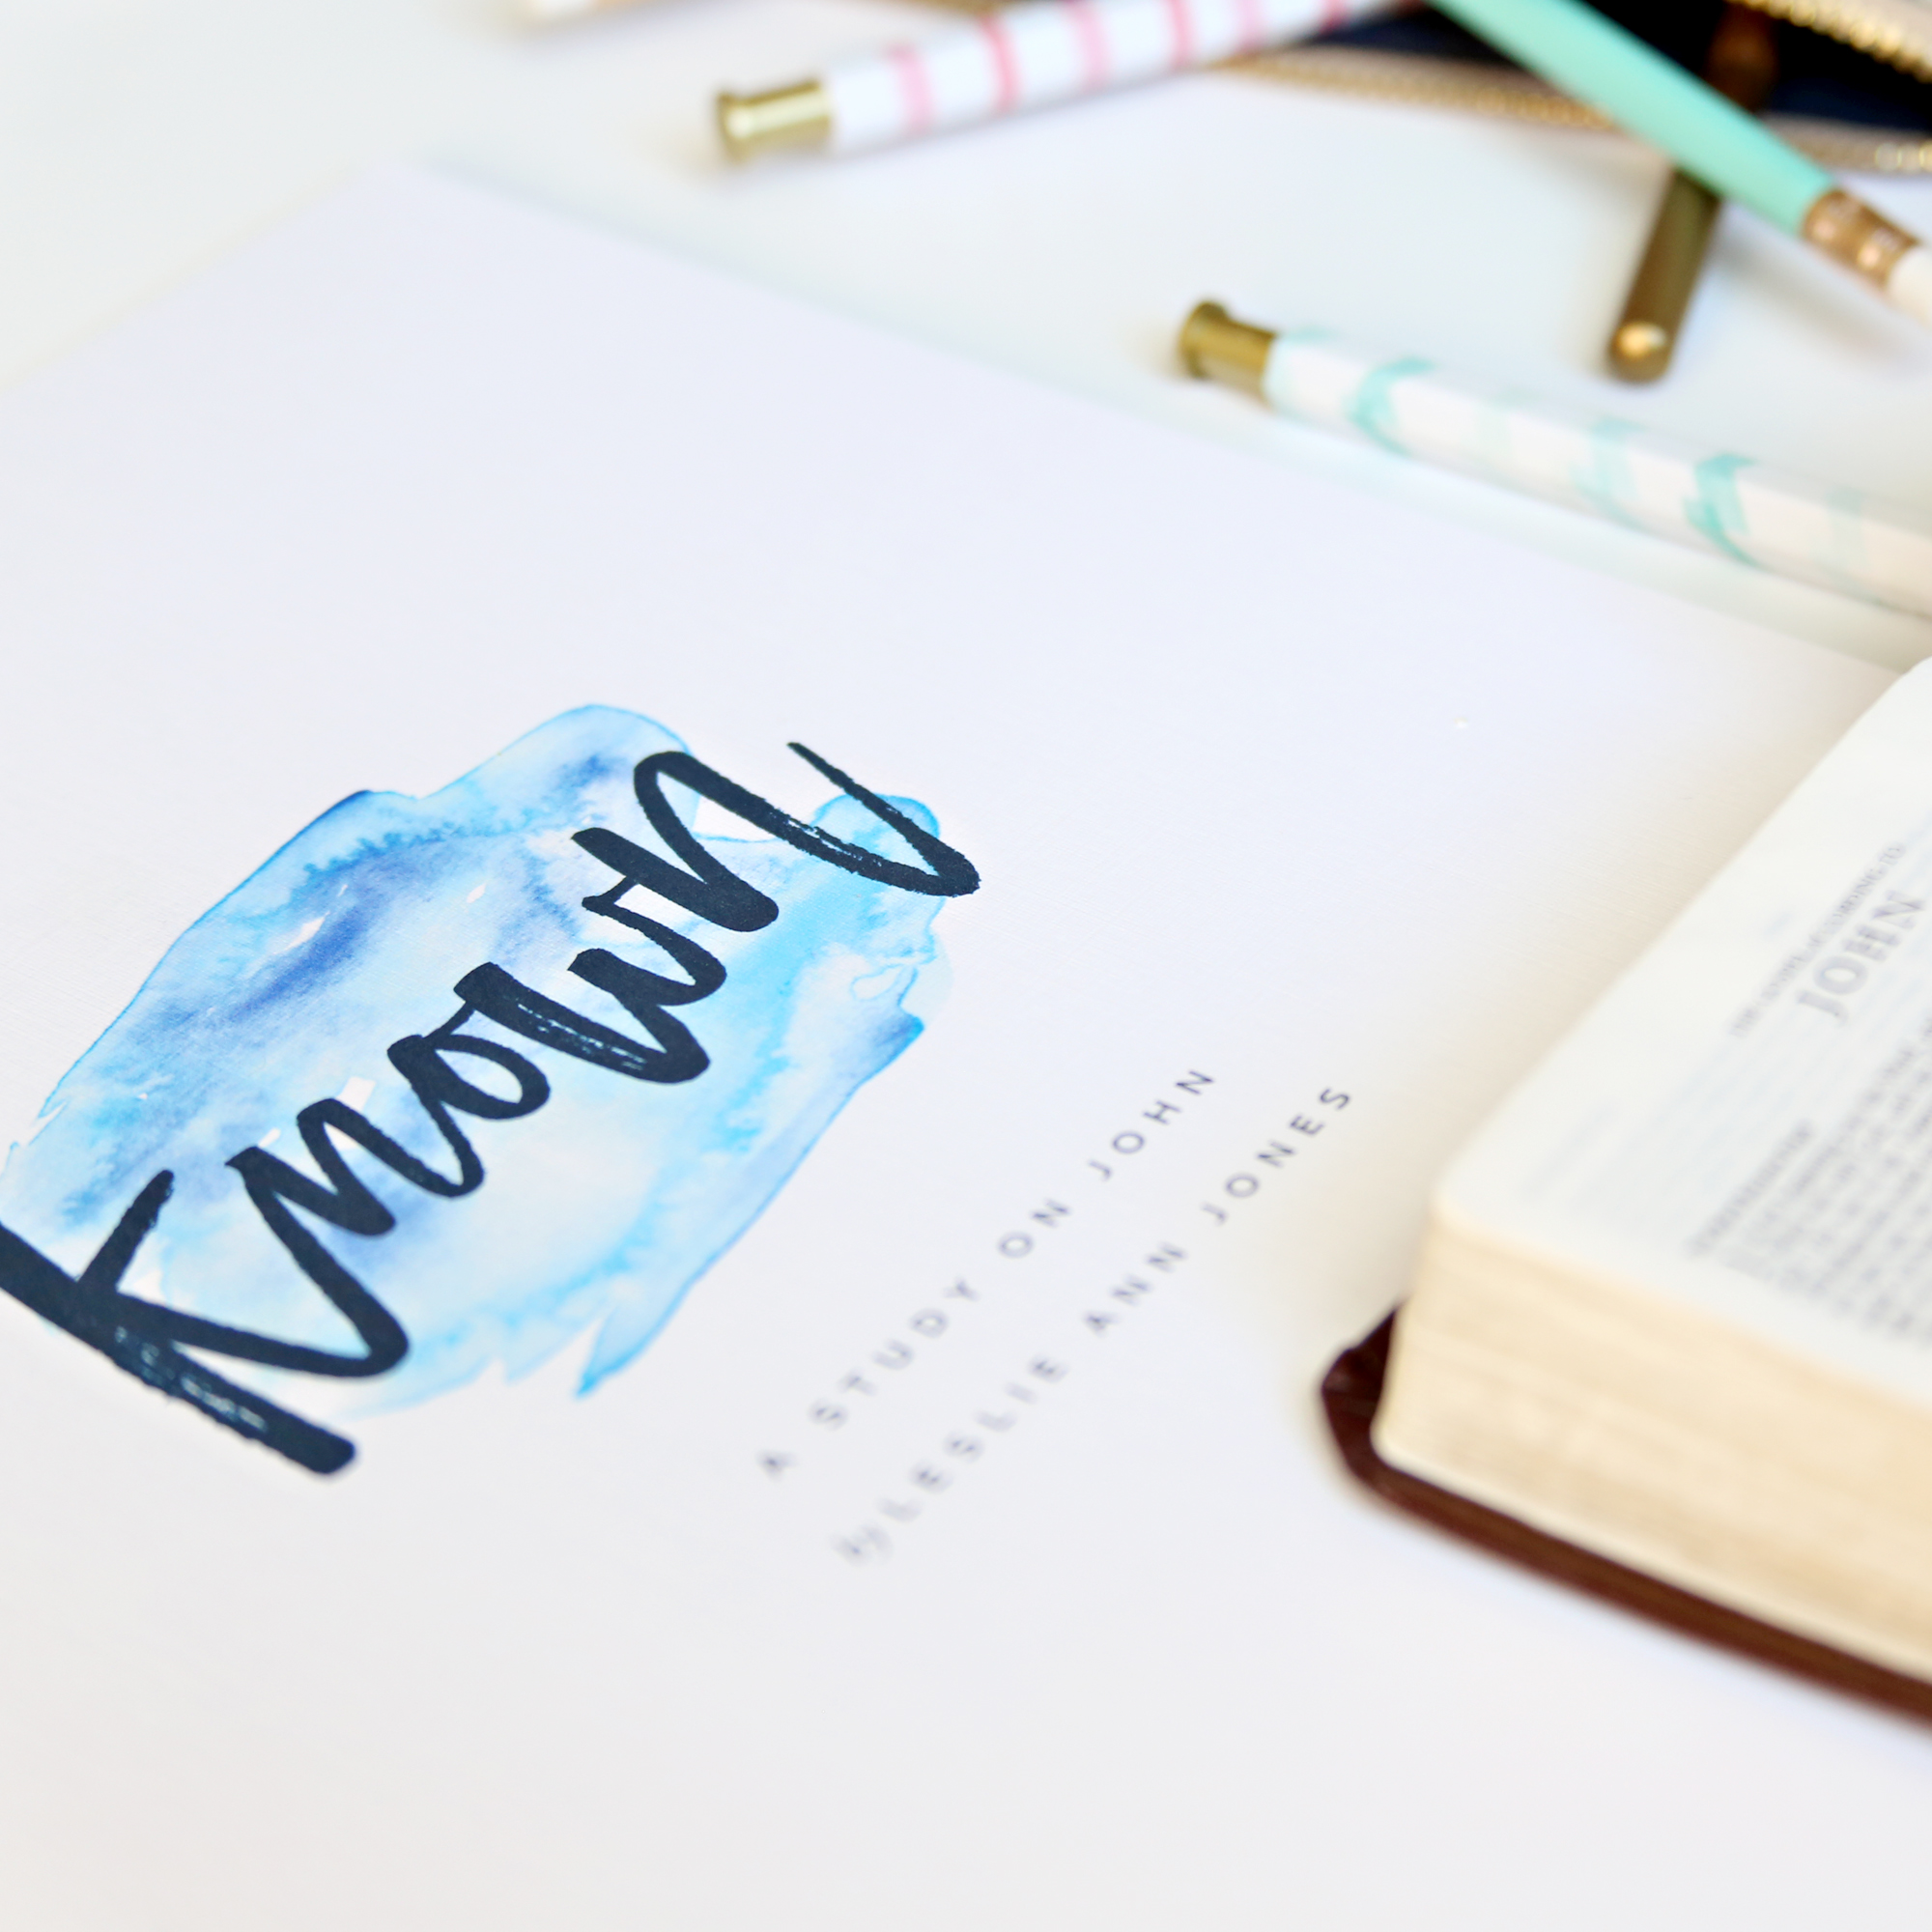 Known is a 9-week chapter-by-chapter, verse-by-verse study on the Gospel of John written and led by Leslie Ann Jones.